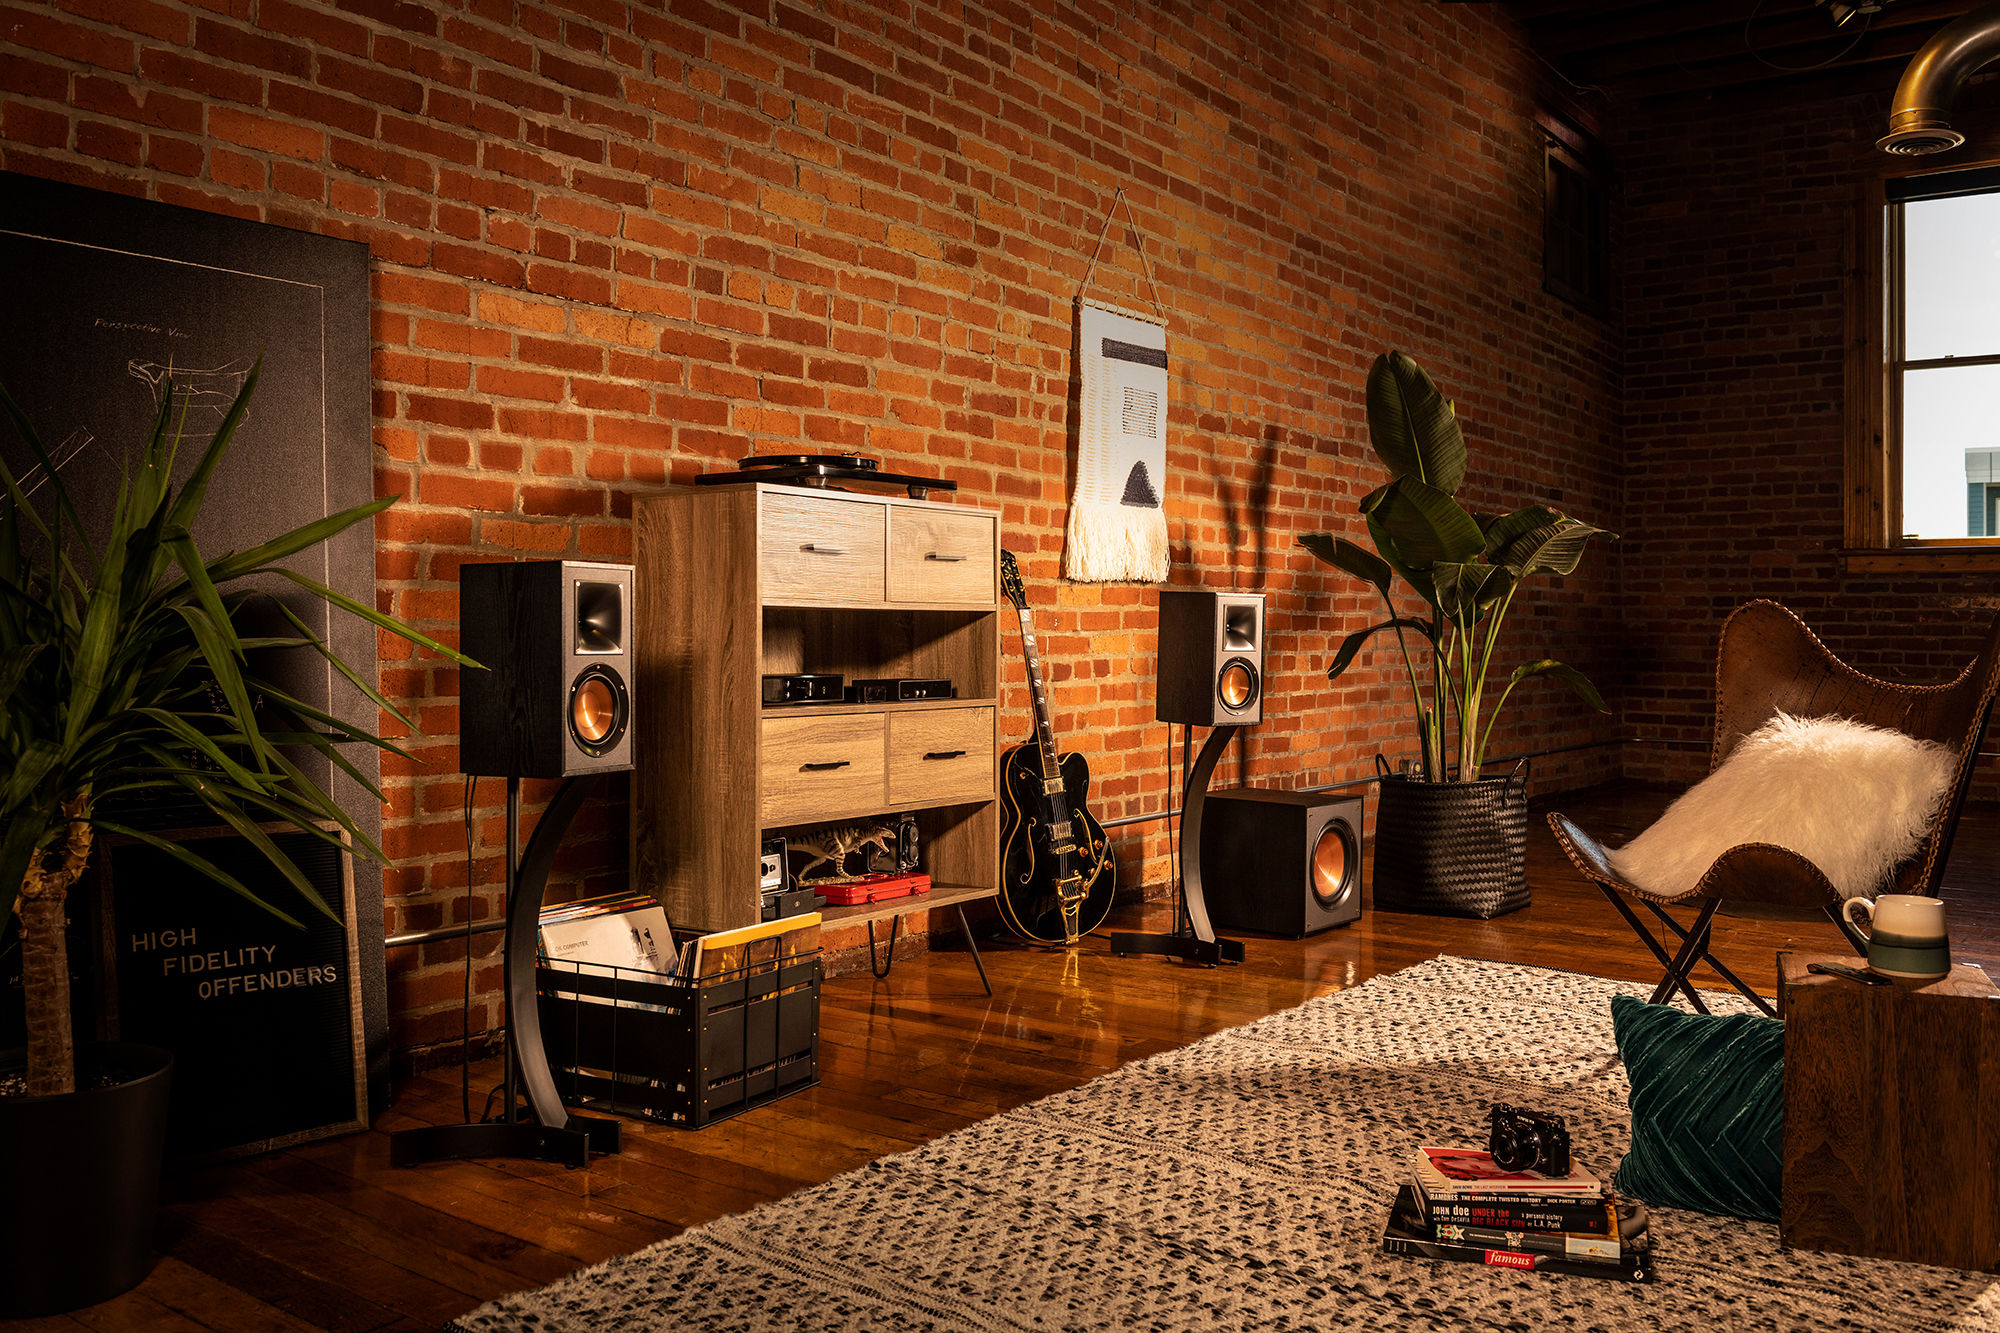 Klipsch Reference bookshelf speakers and subwoofer next to a guitar and wood cabinet